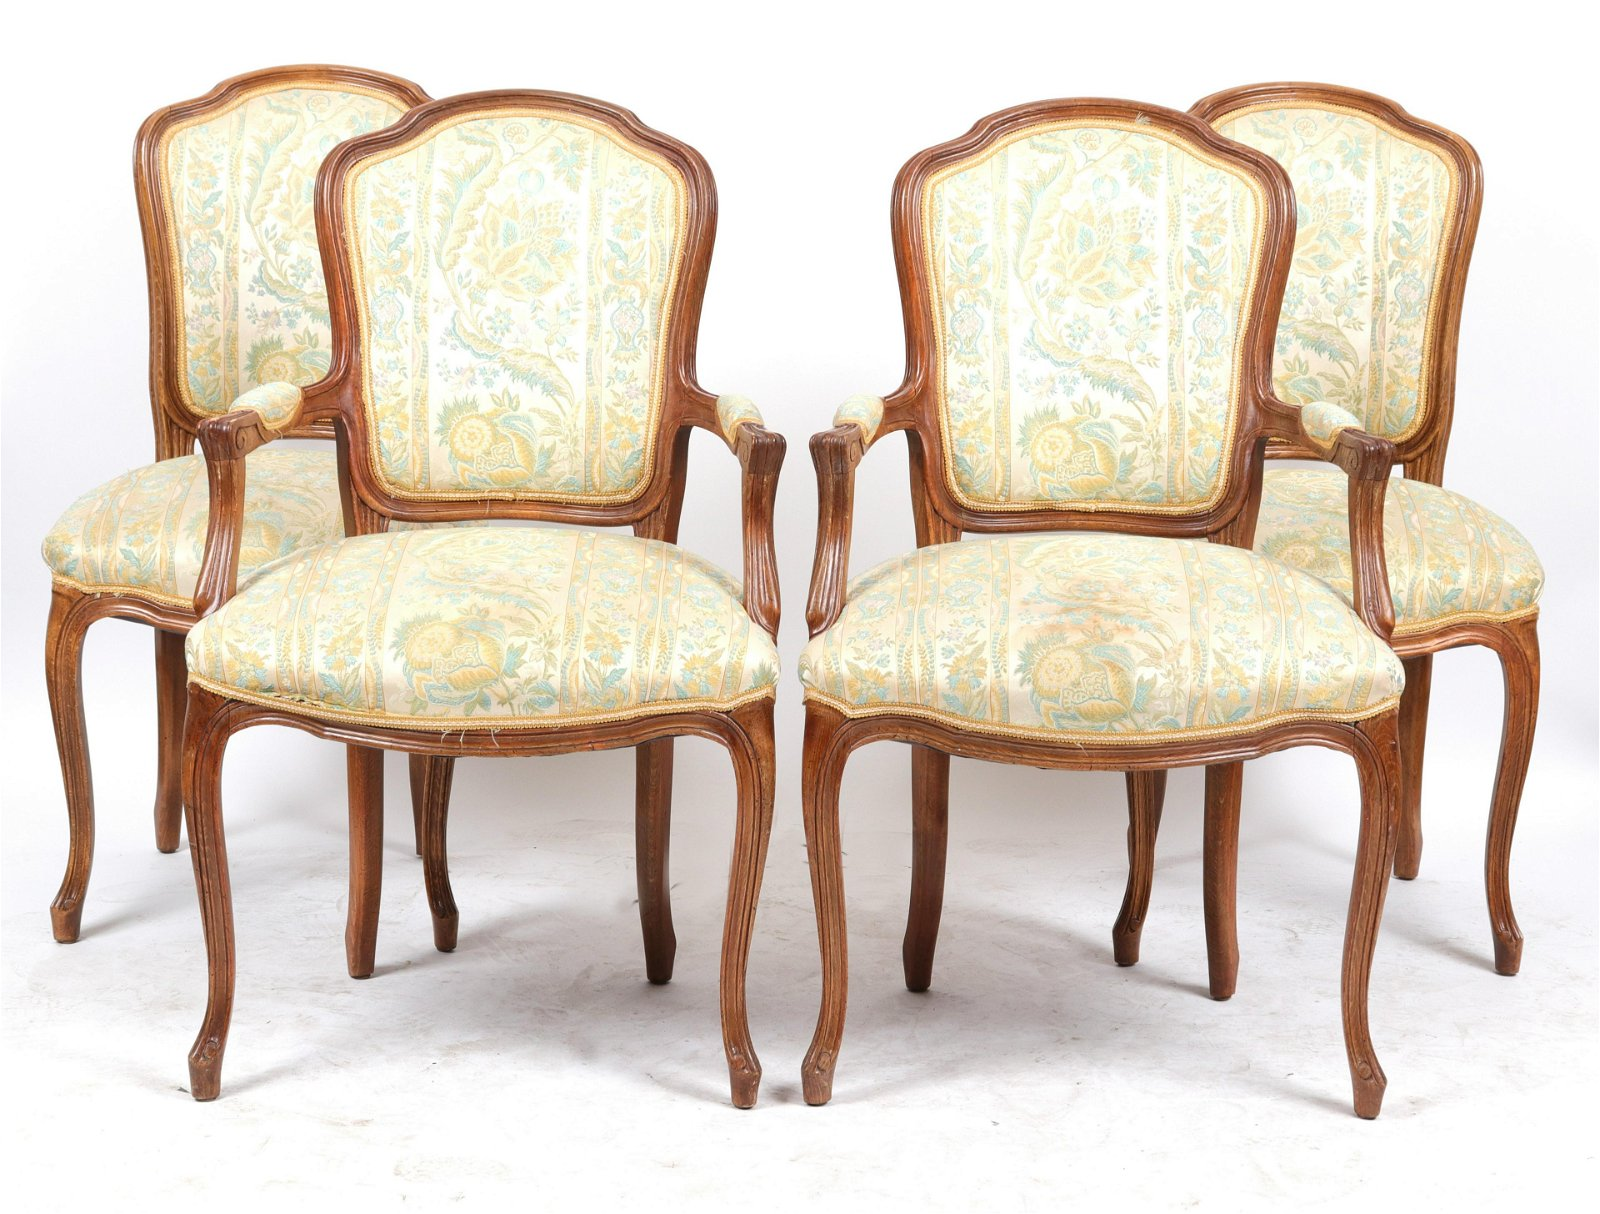 French Louis XV Style Dining Chairs, Set of 4